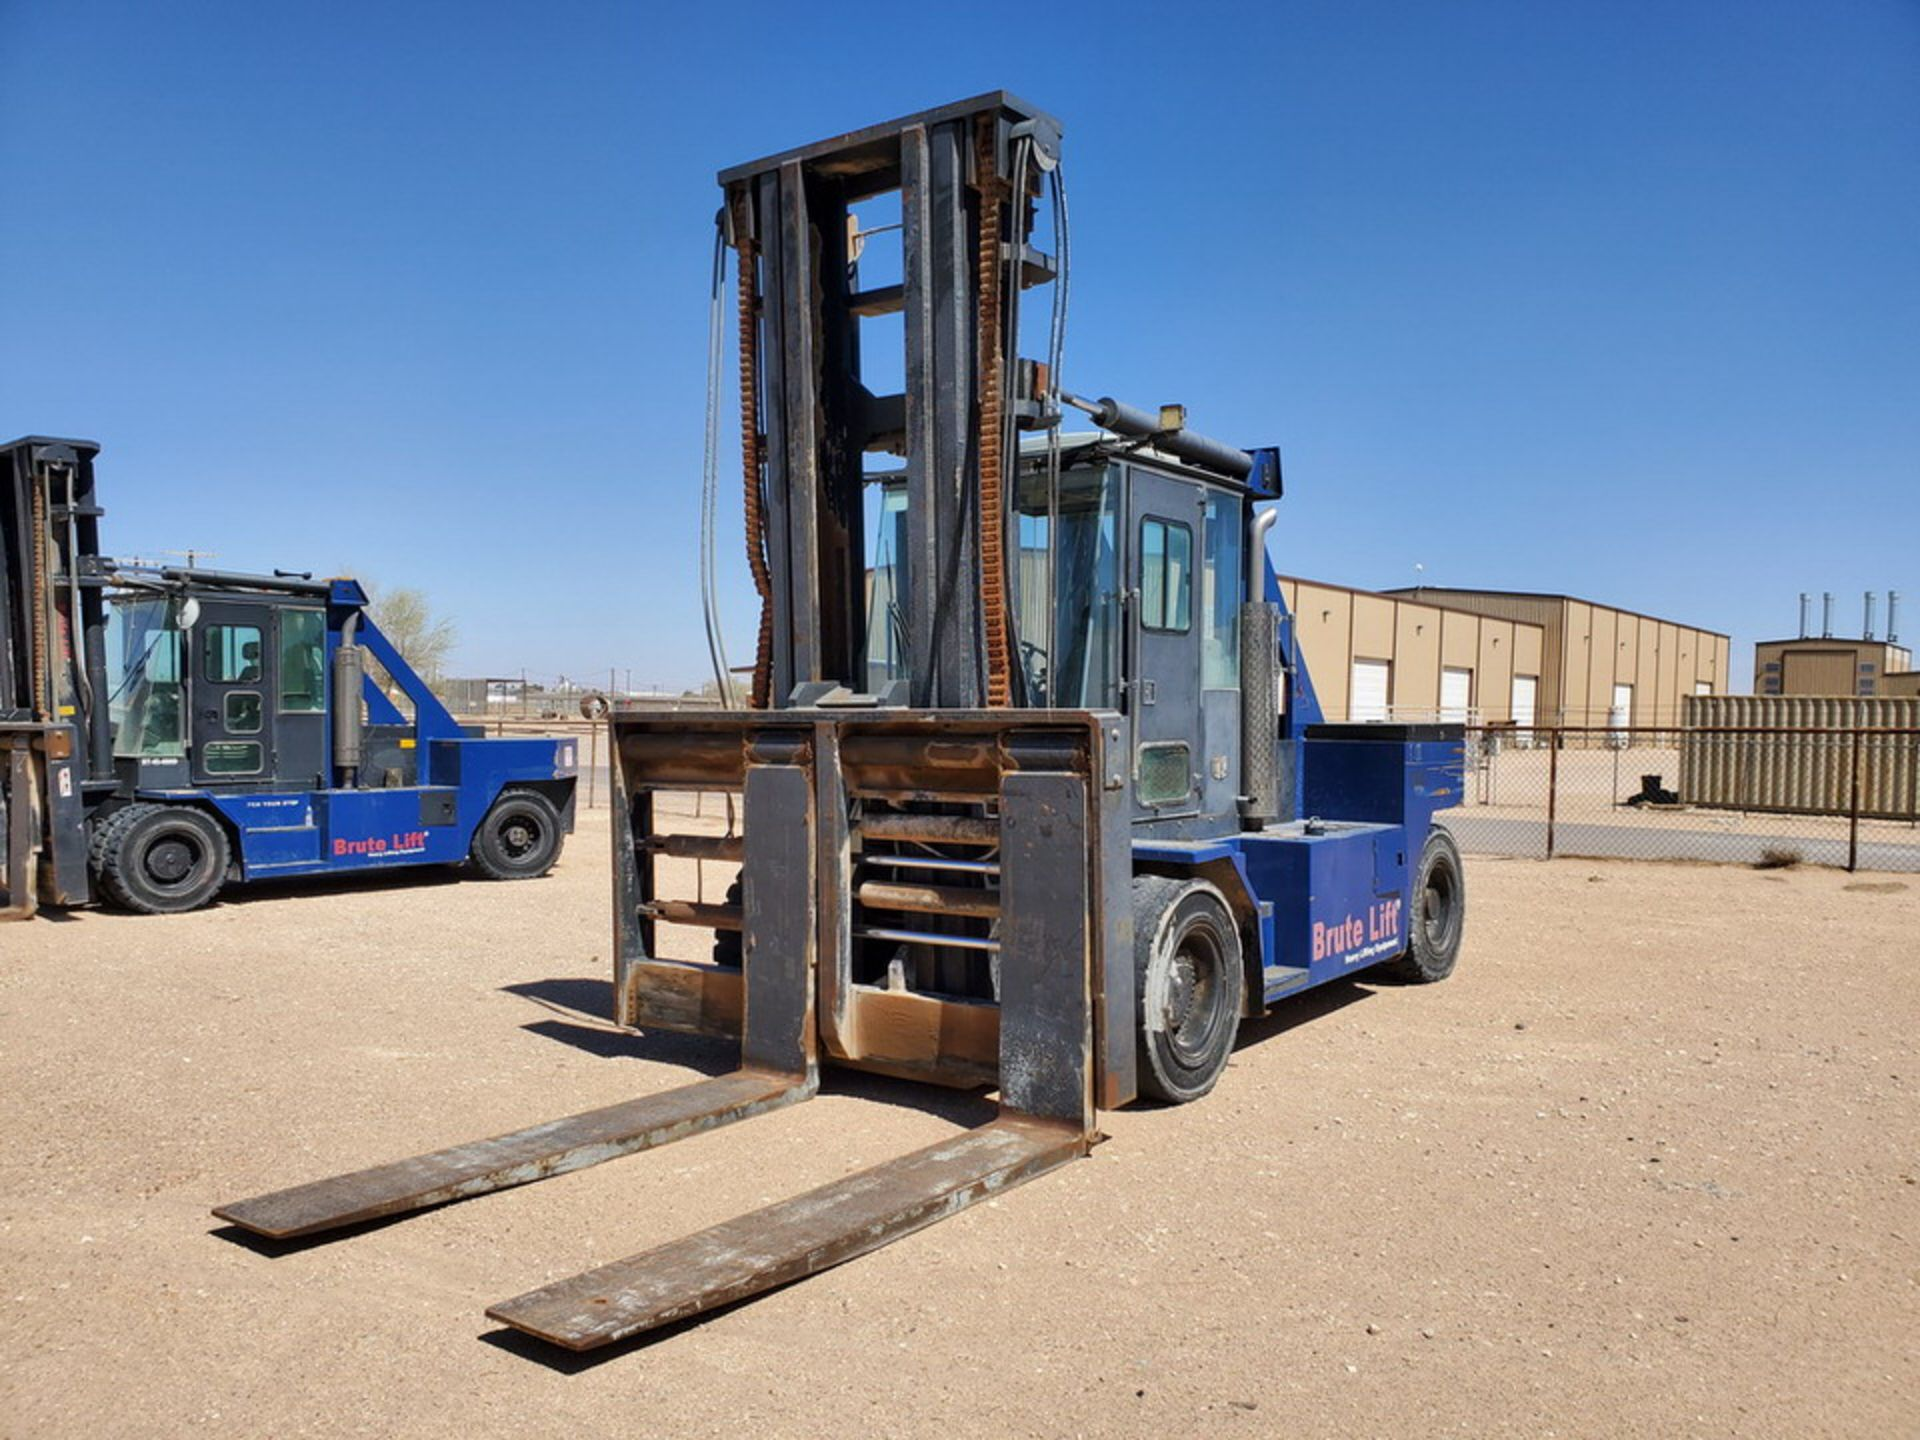 2012 Brute Lift BT40-48 Forklift 40H Cap., Engine Hrs: 3,389.3 - Image 2 of 17